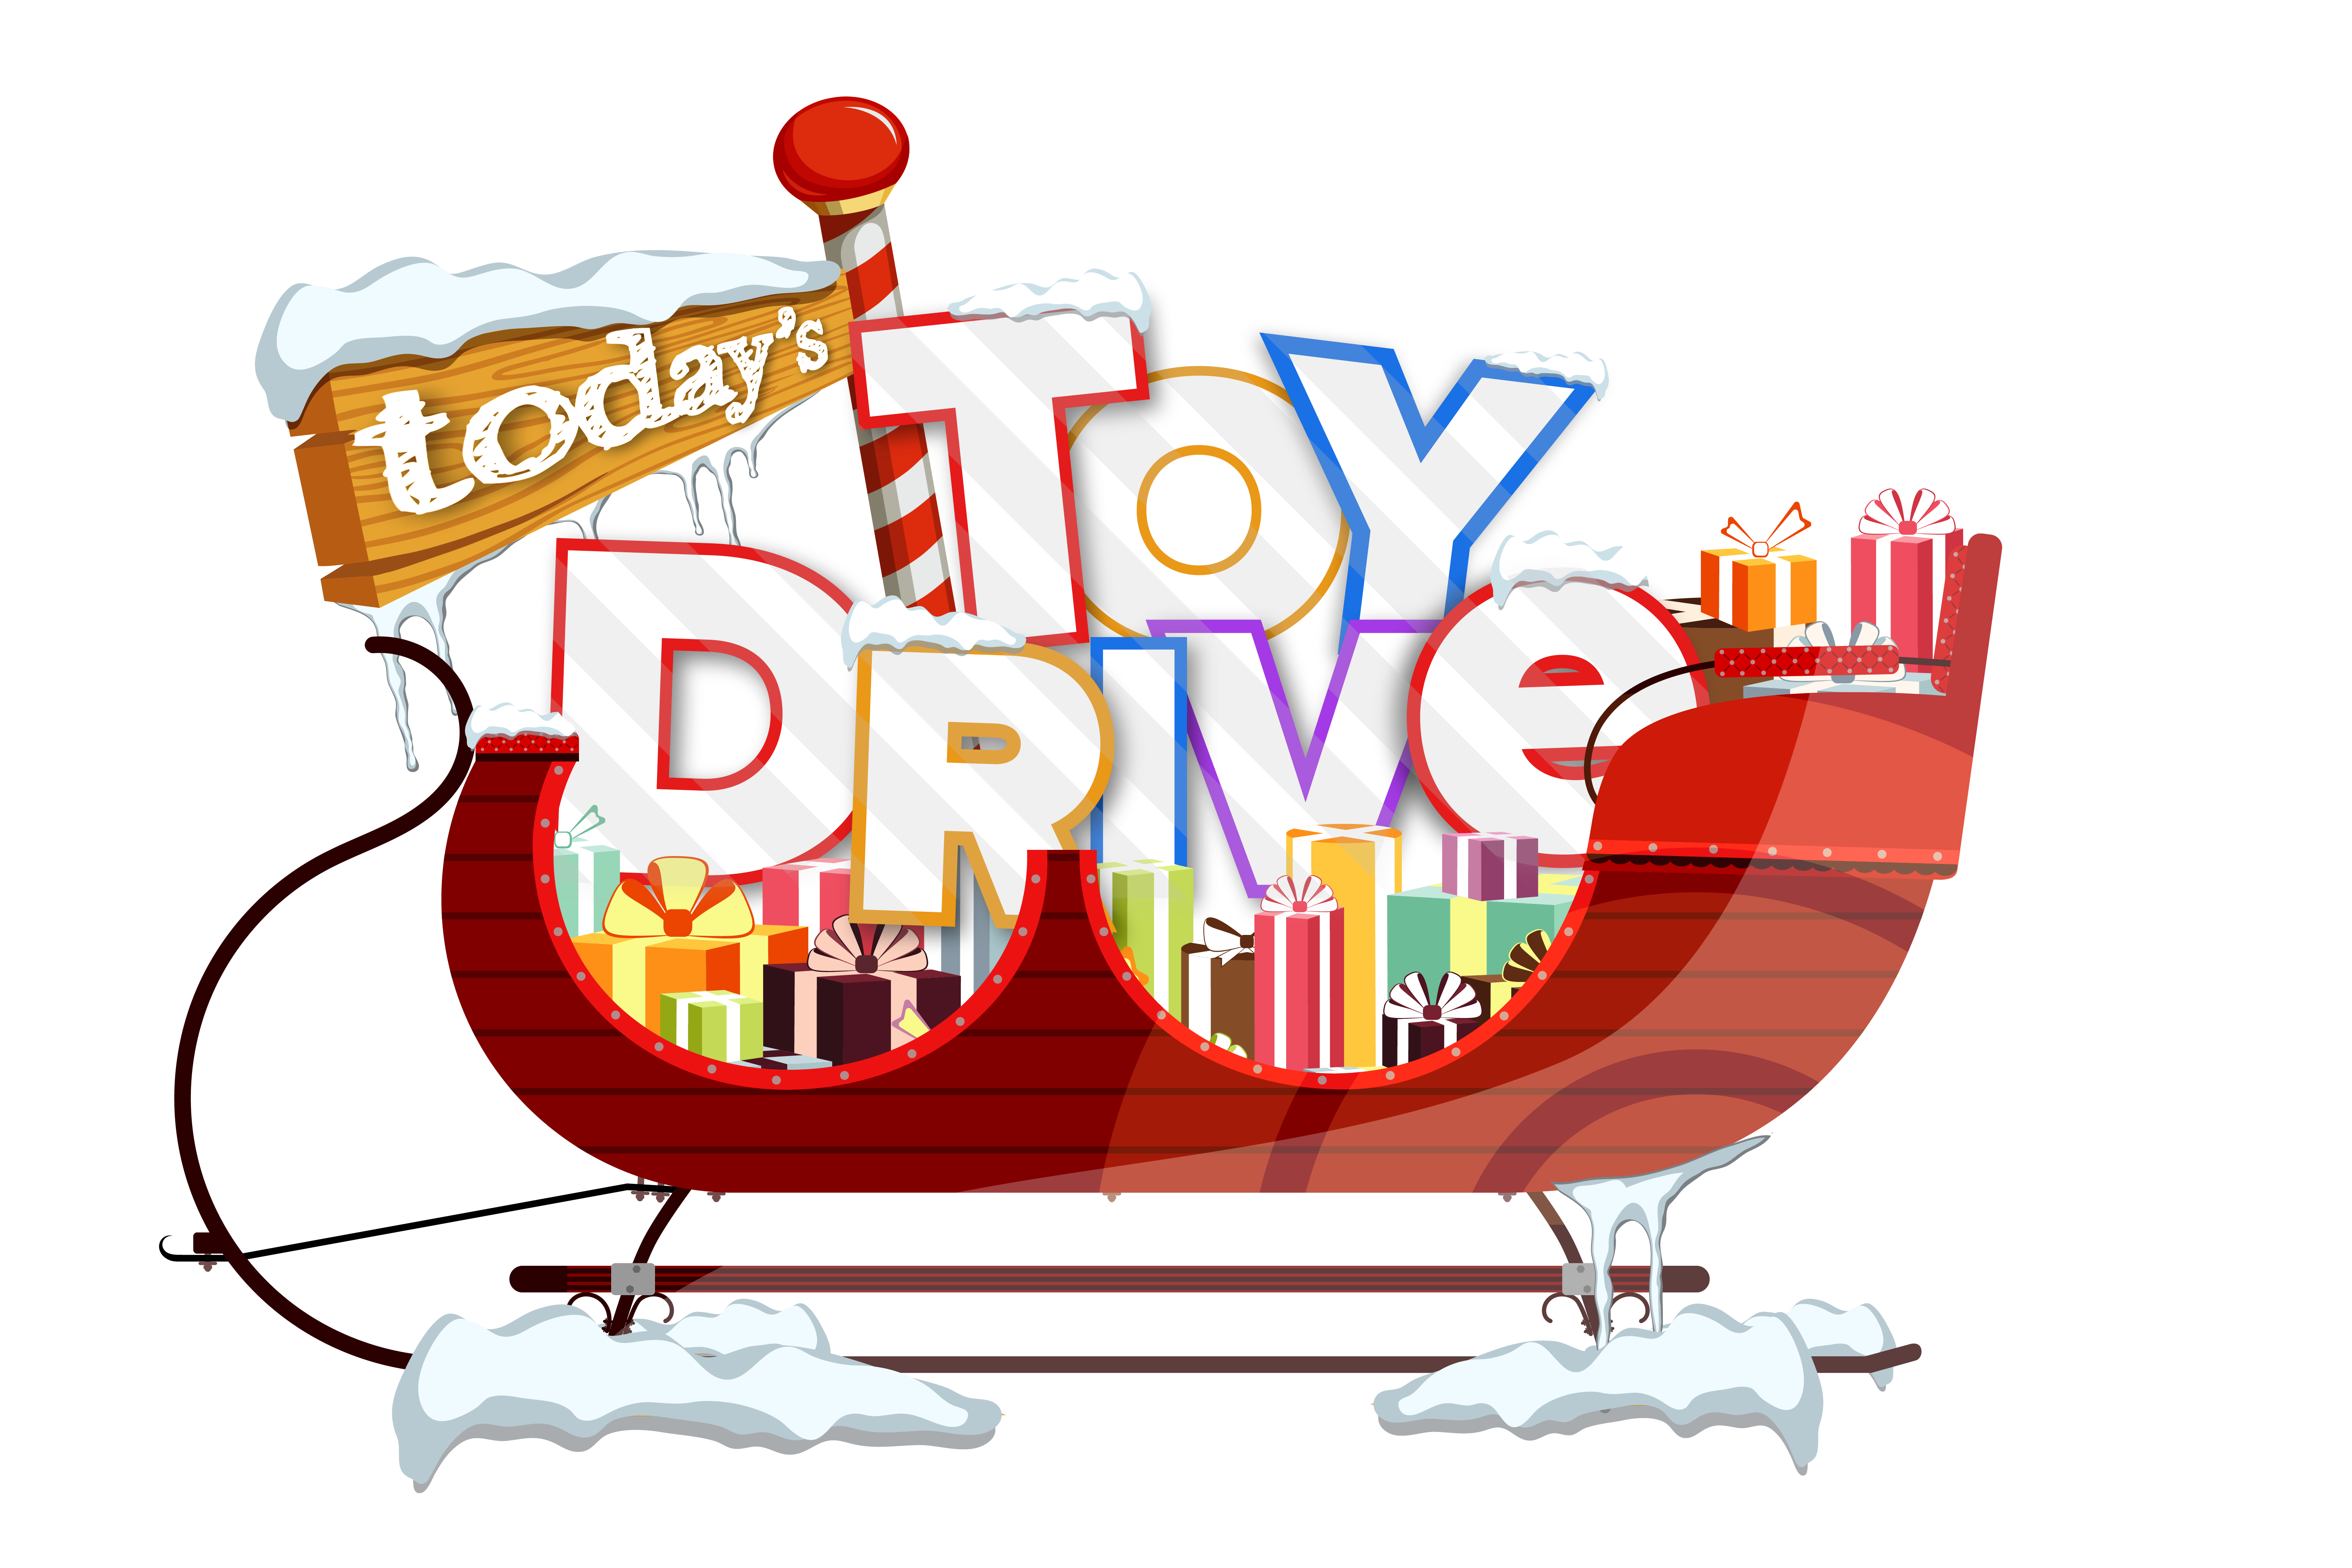 Holiday toy drive clipart clipart royalty free $3 Million in Mary Kay® Products and Toys Brings... clipart royalty free